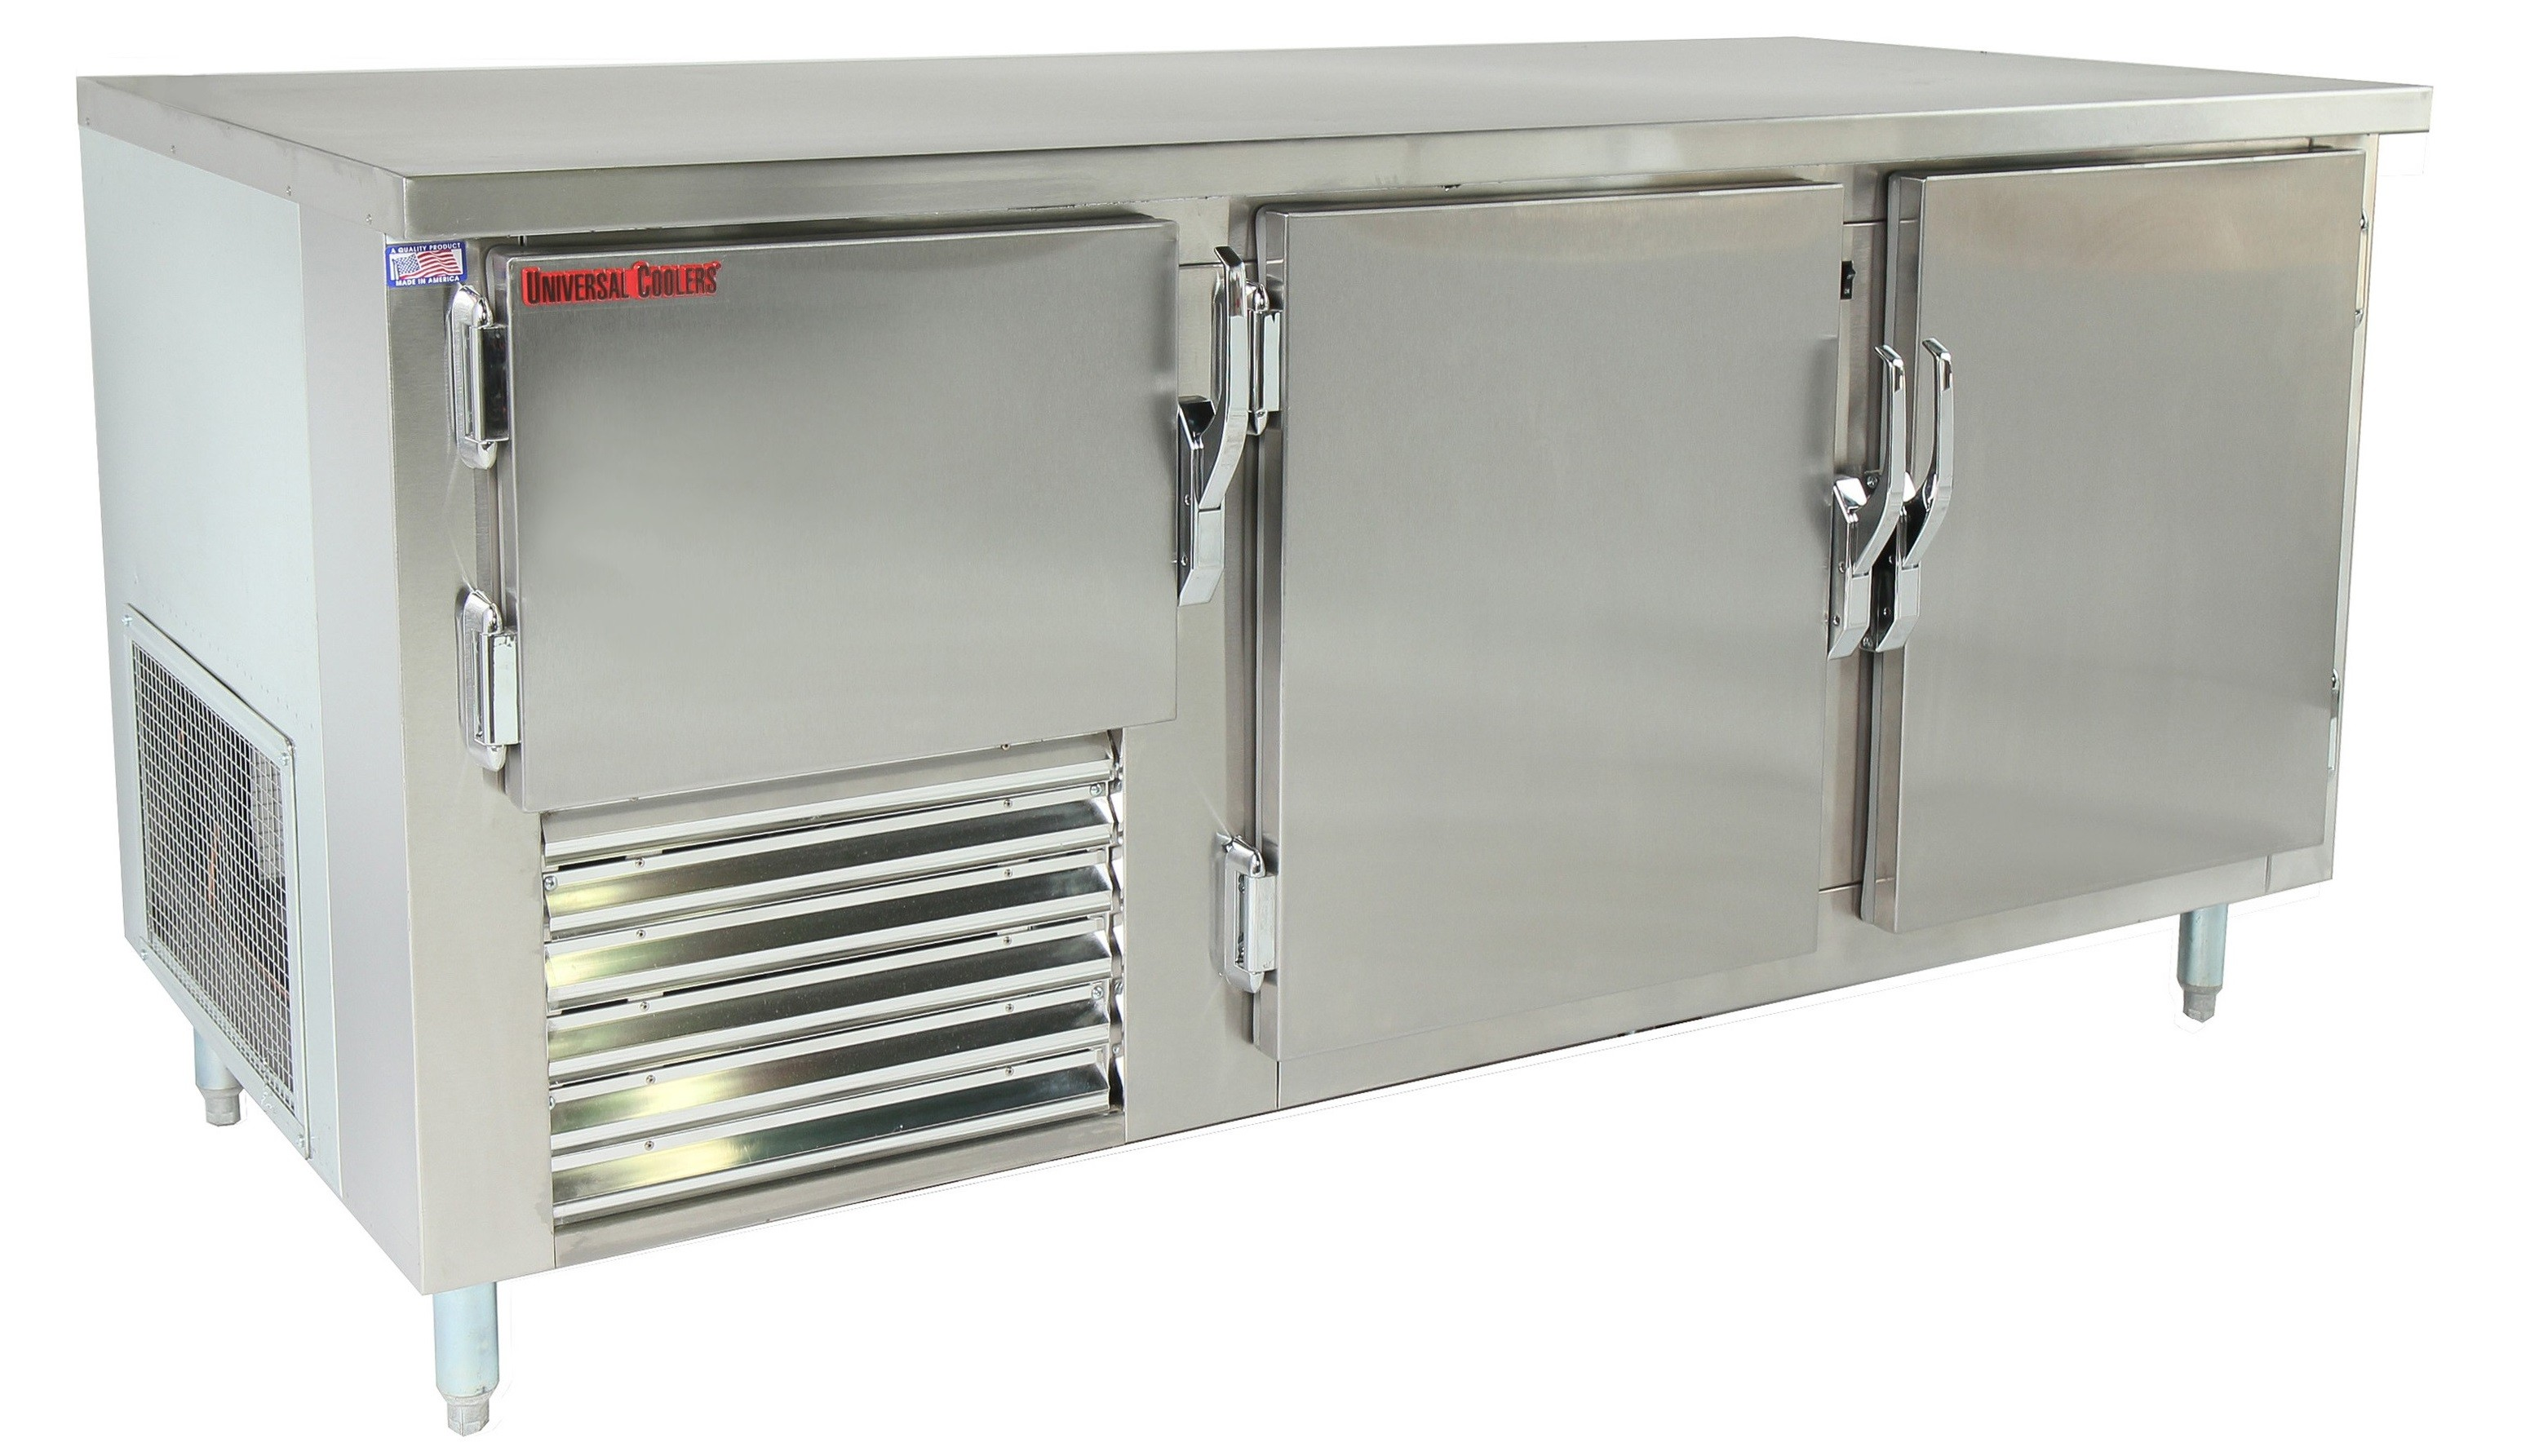 Universal Coolers SC-72-LB - Undercounter Refrigerator - 72